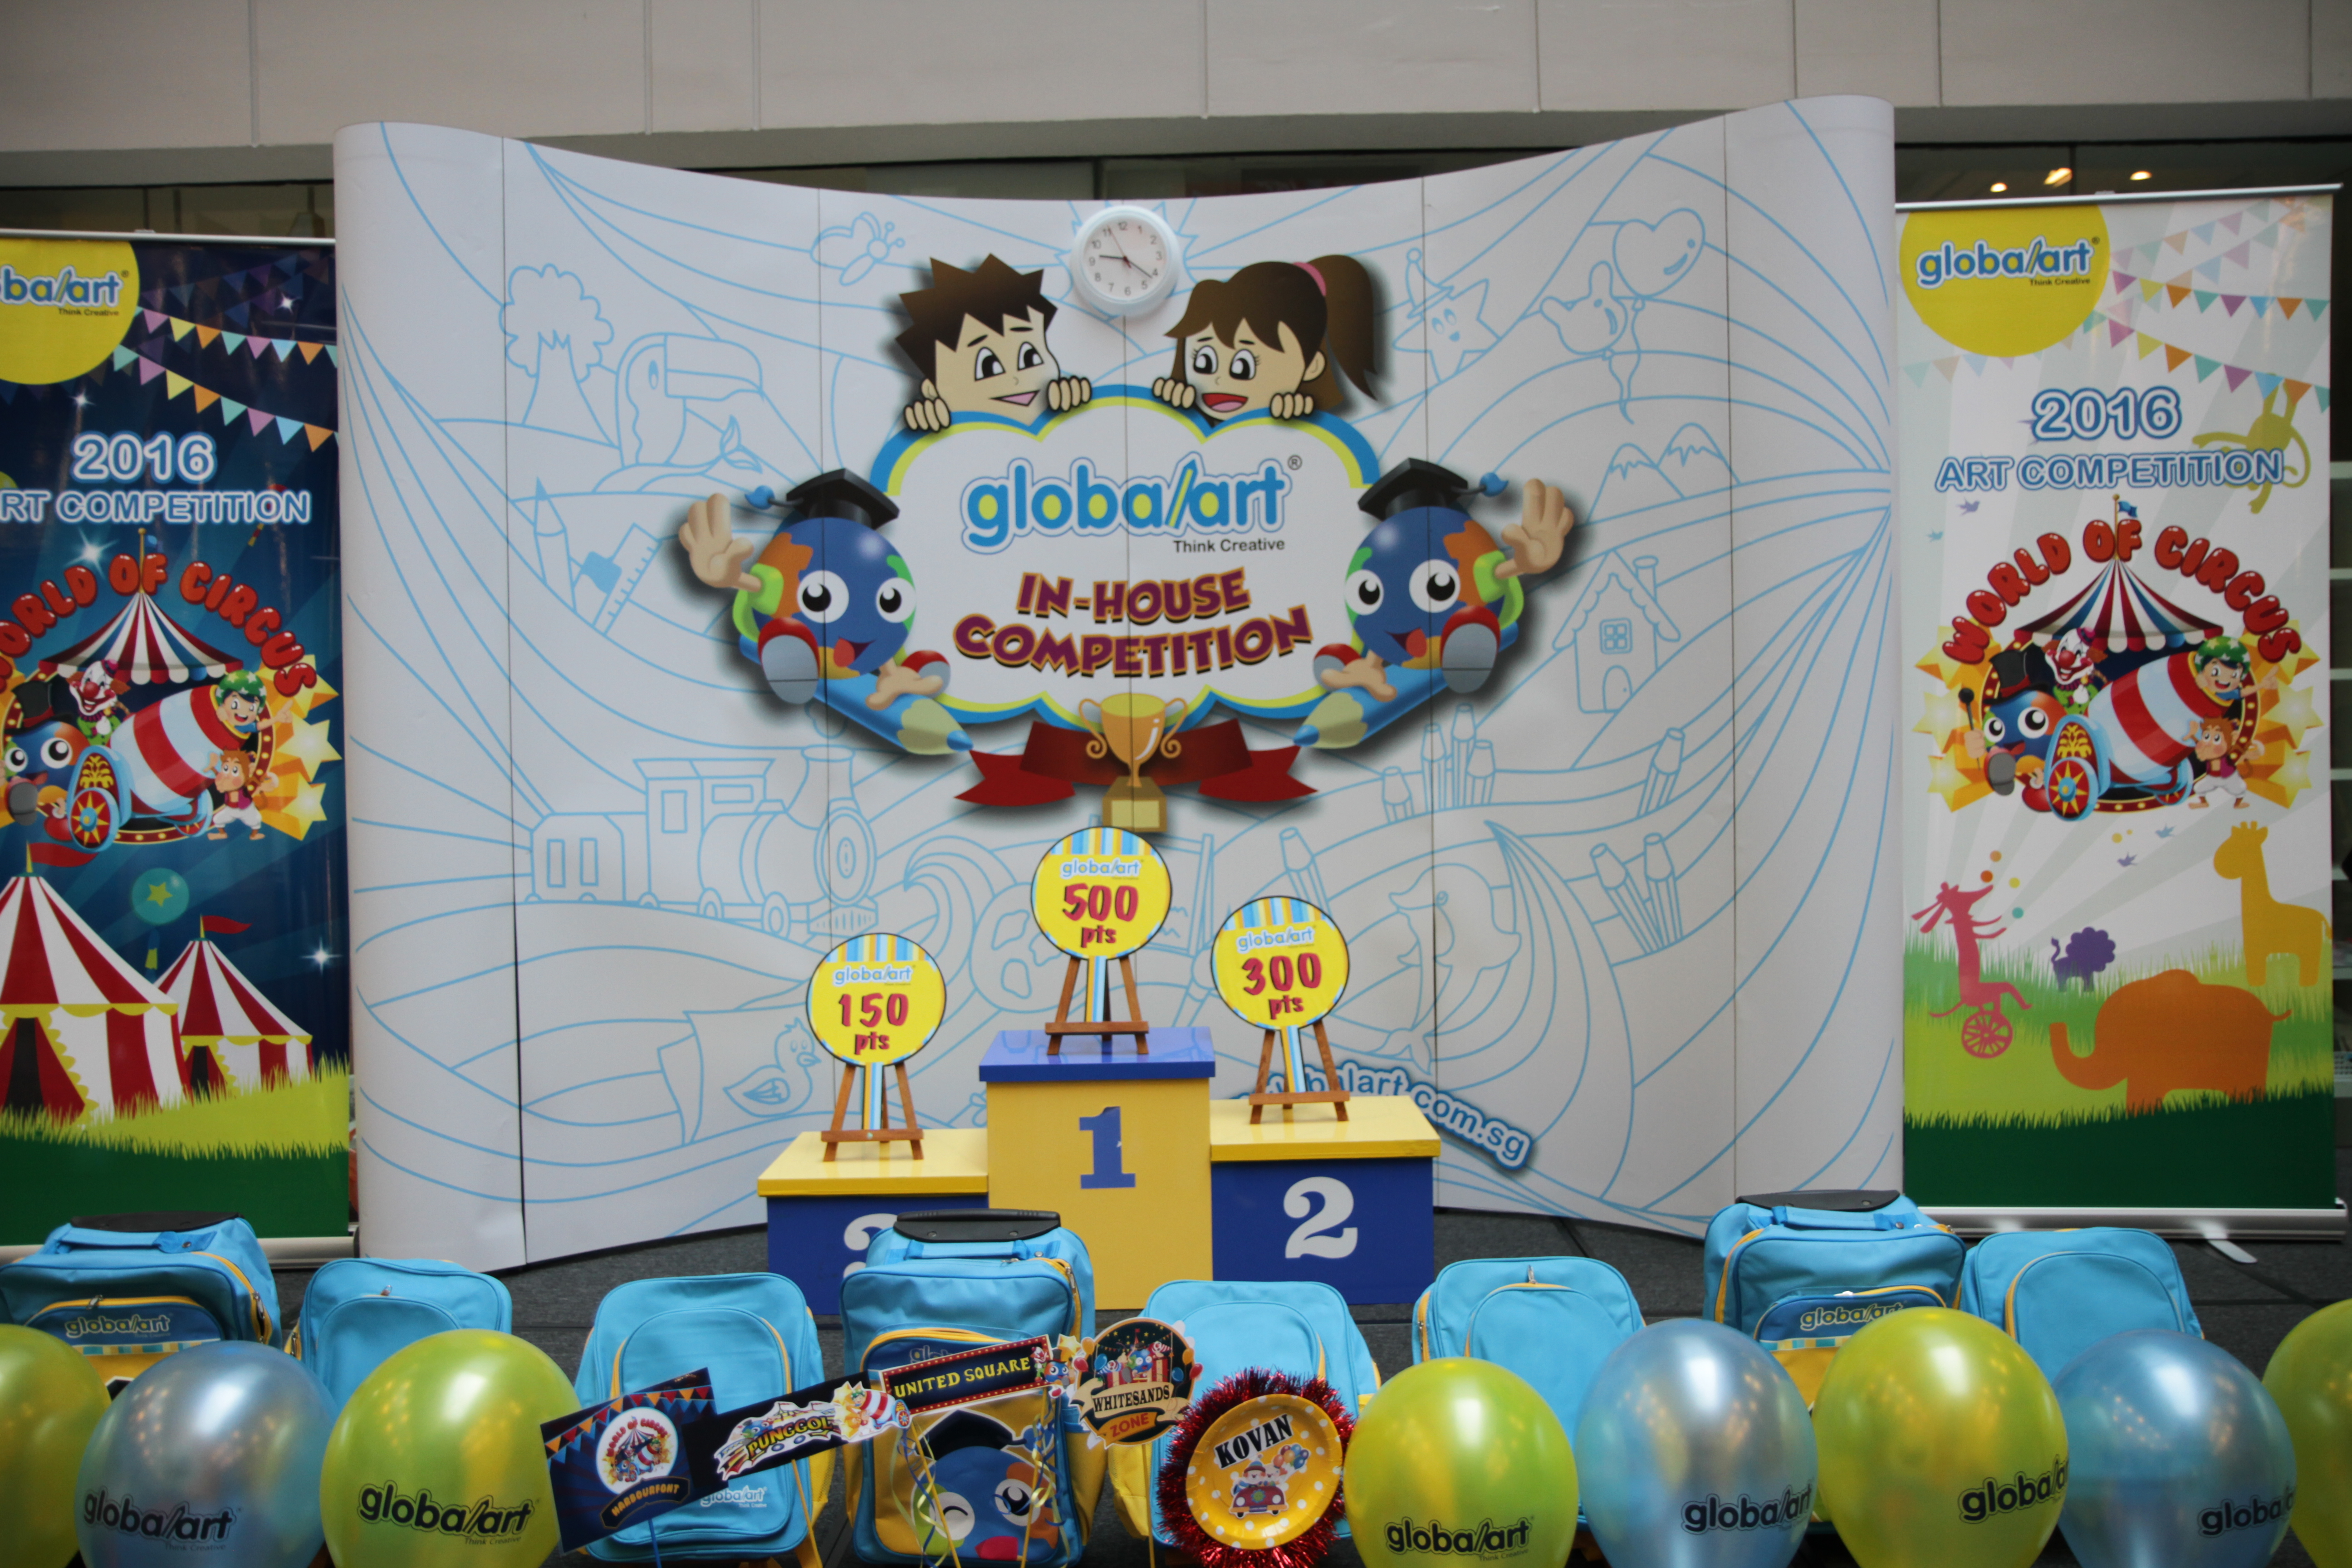 2016 Globalart In House Competition, Singapore